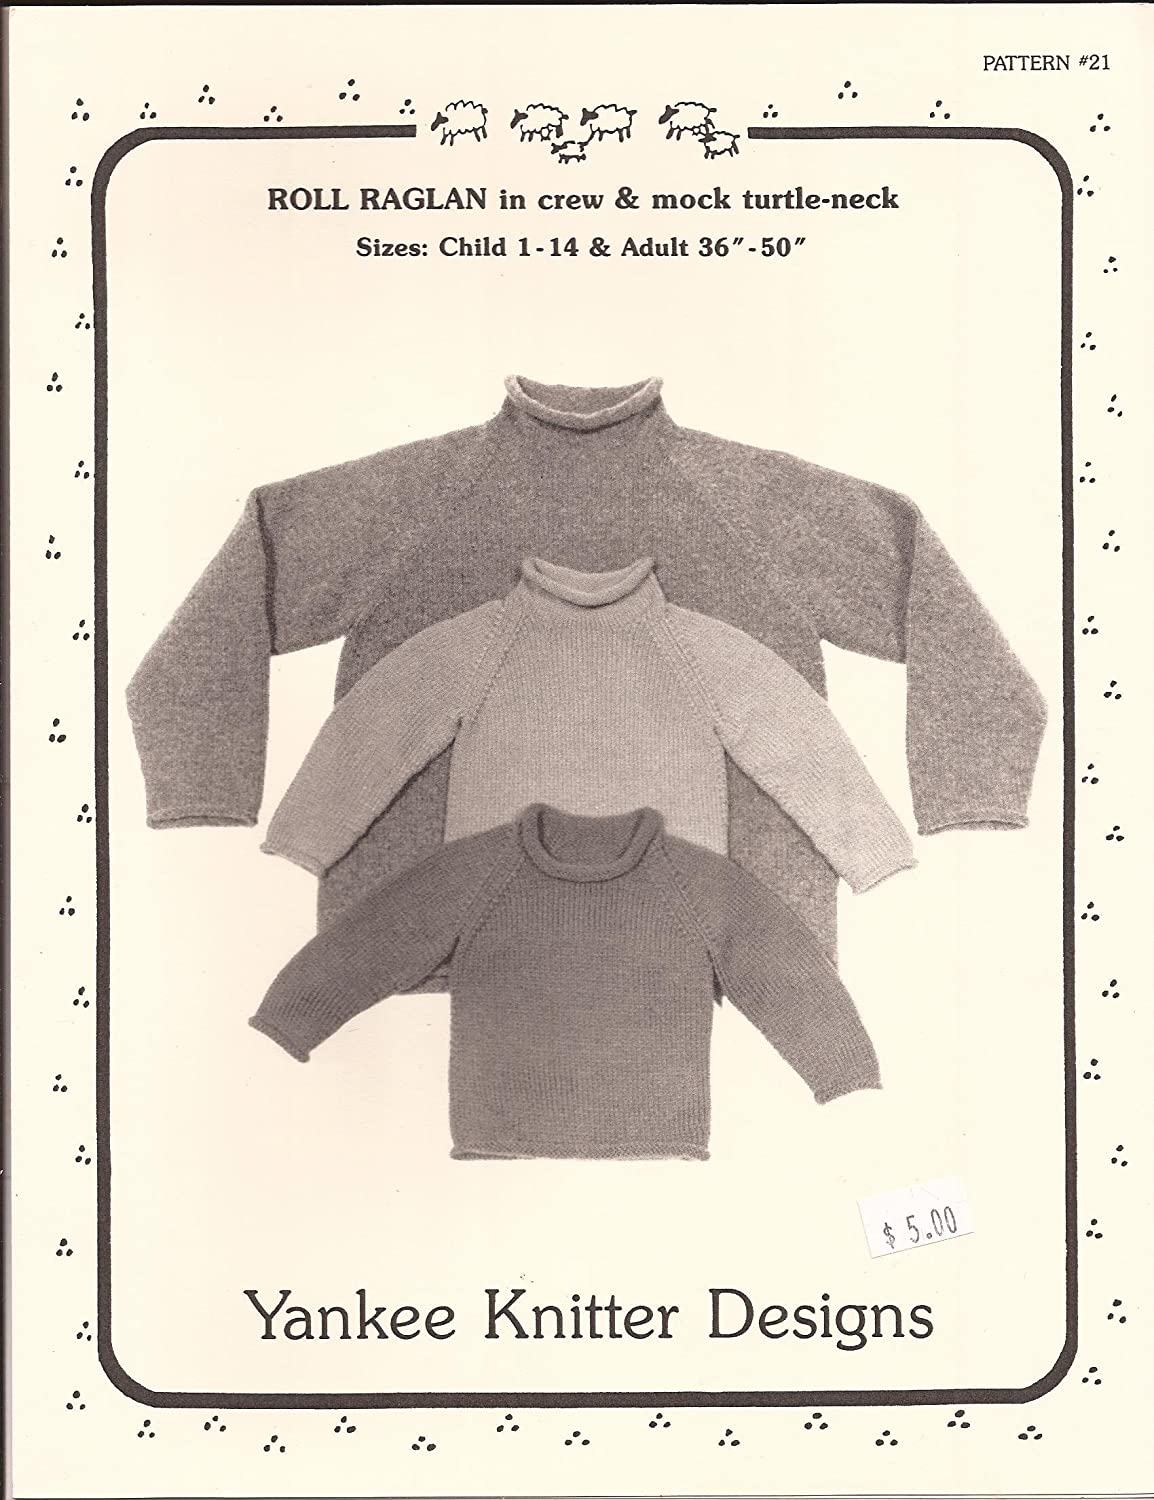 Yankee Knitter Designs Knitting Pattern #21 Roll Raglan Pullover for Children /& Adults